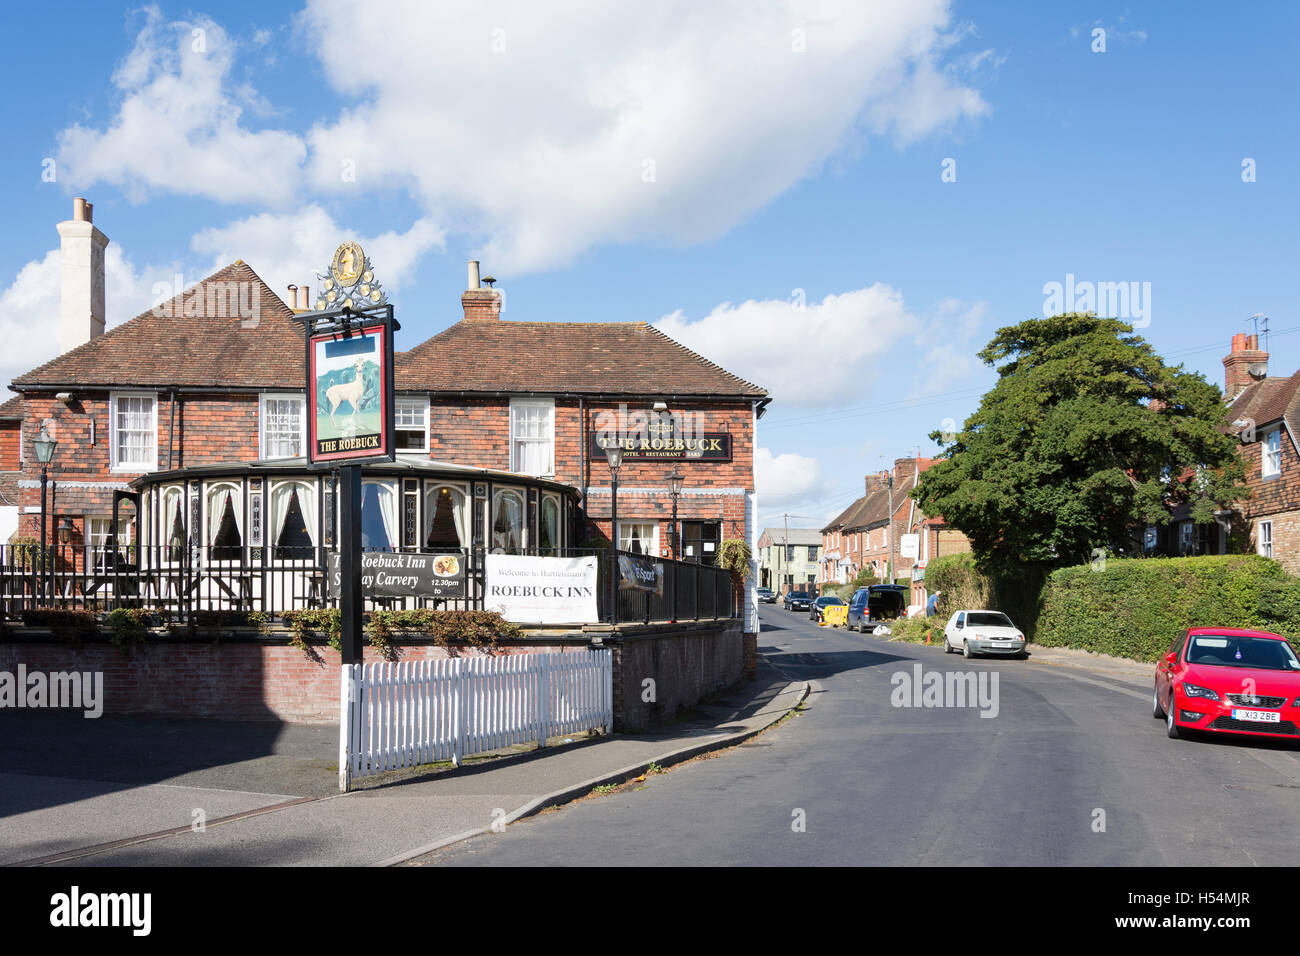 The Roebuck Inn, West Street, Harrietsham, Kent, England, United Kingdom - Stock Image